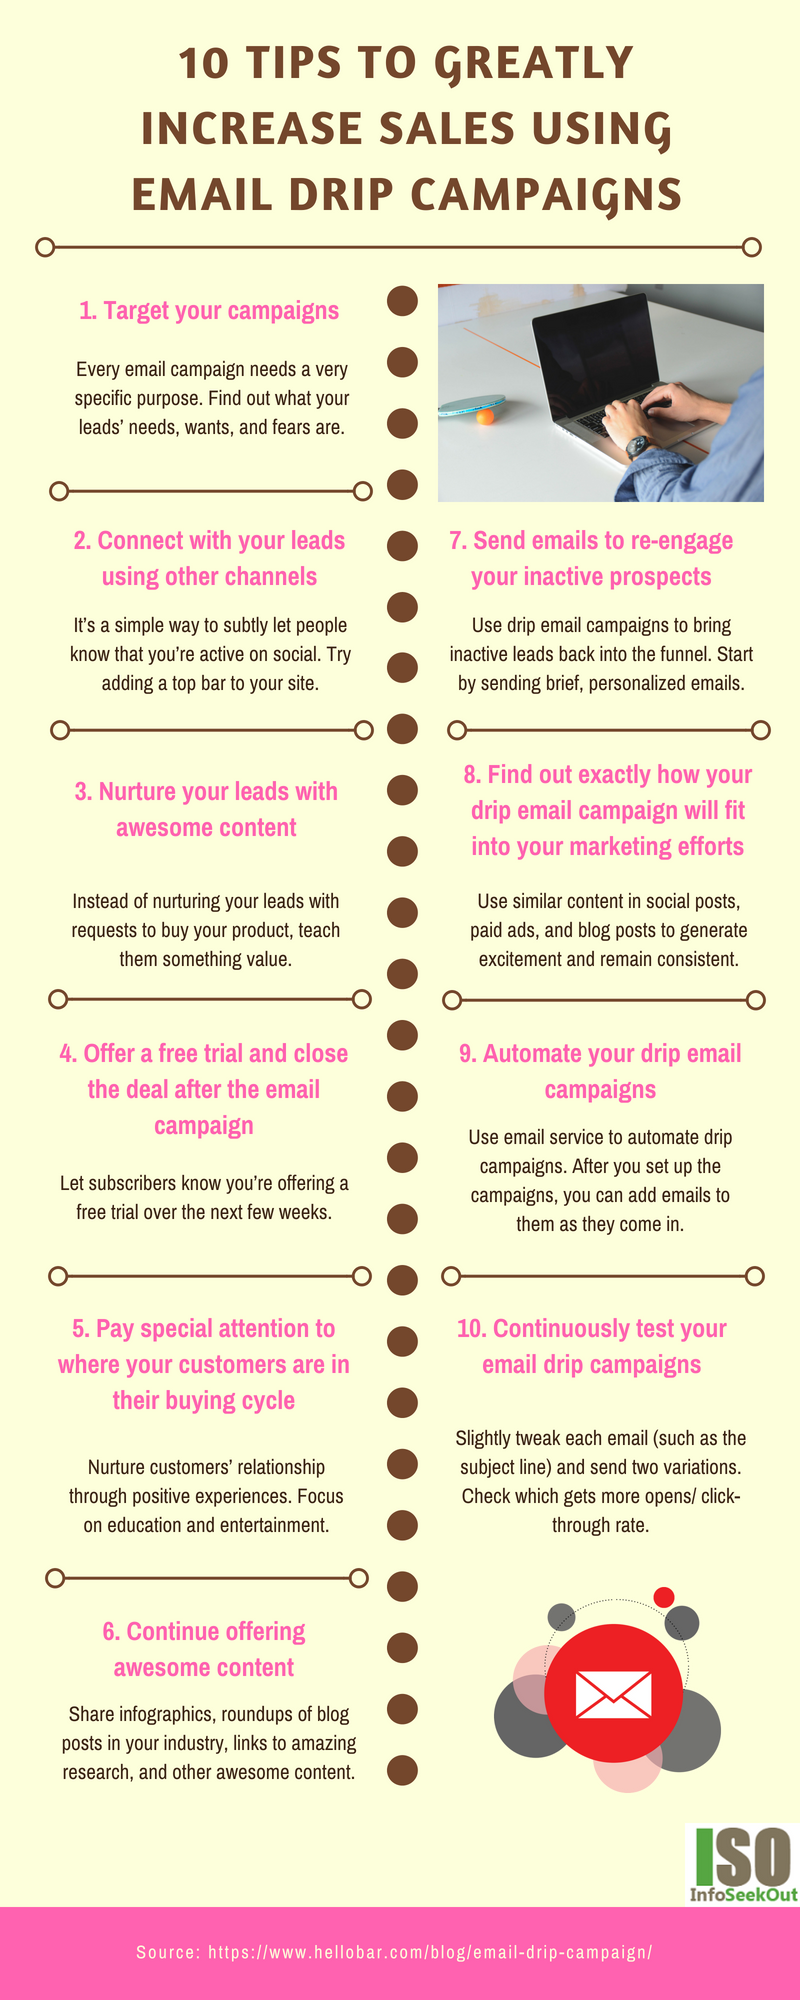 10 Tips To Greatly Increase Sales Using Email Drip Campaigns